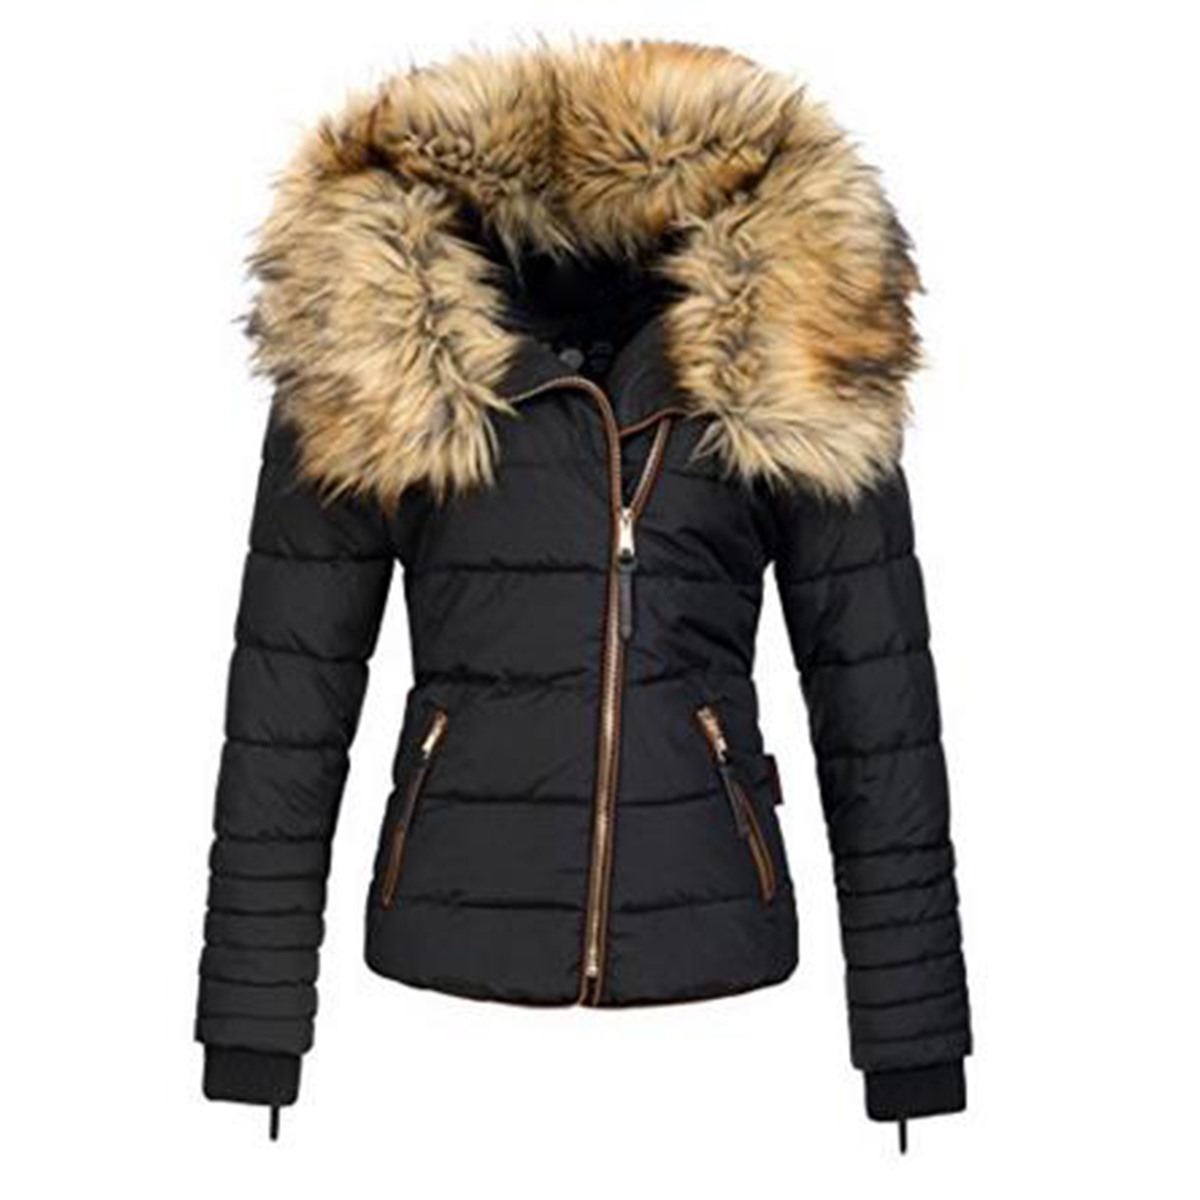 Winter women short parkas coat warm fake fur collar zipper black solid pocket slim cool lady Autumn Cotton Thicken coat jacket